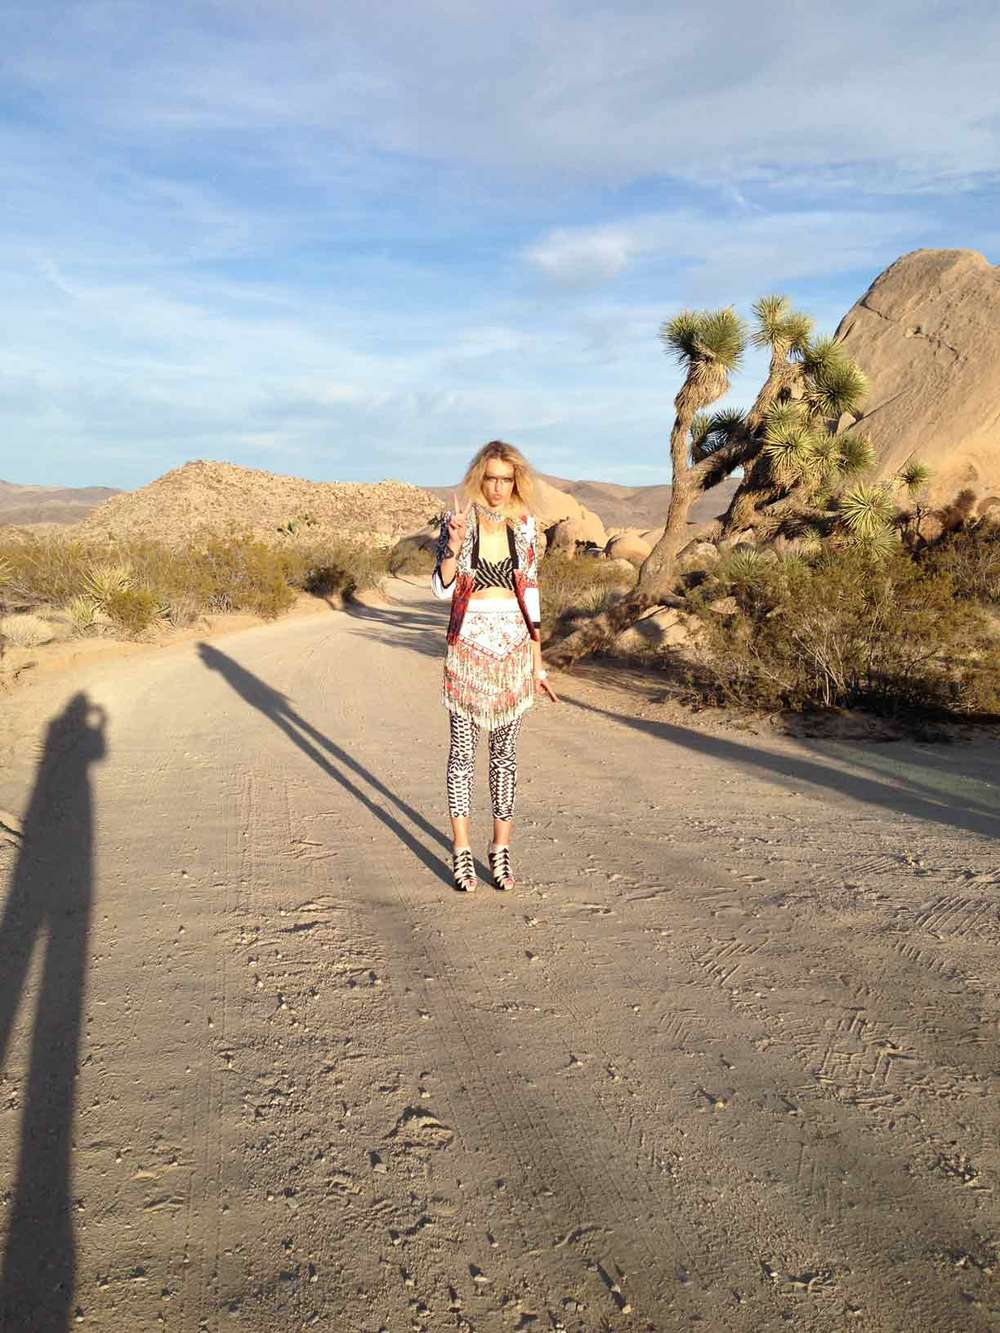 Masha from Photogenics in this crazy beautiful place called Joshua Tree